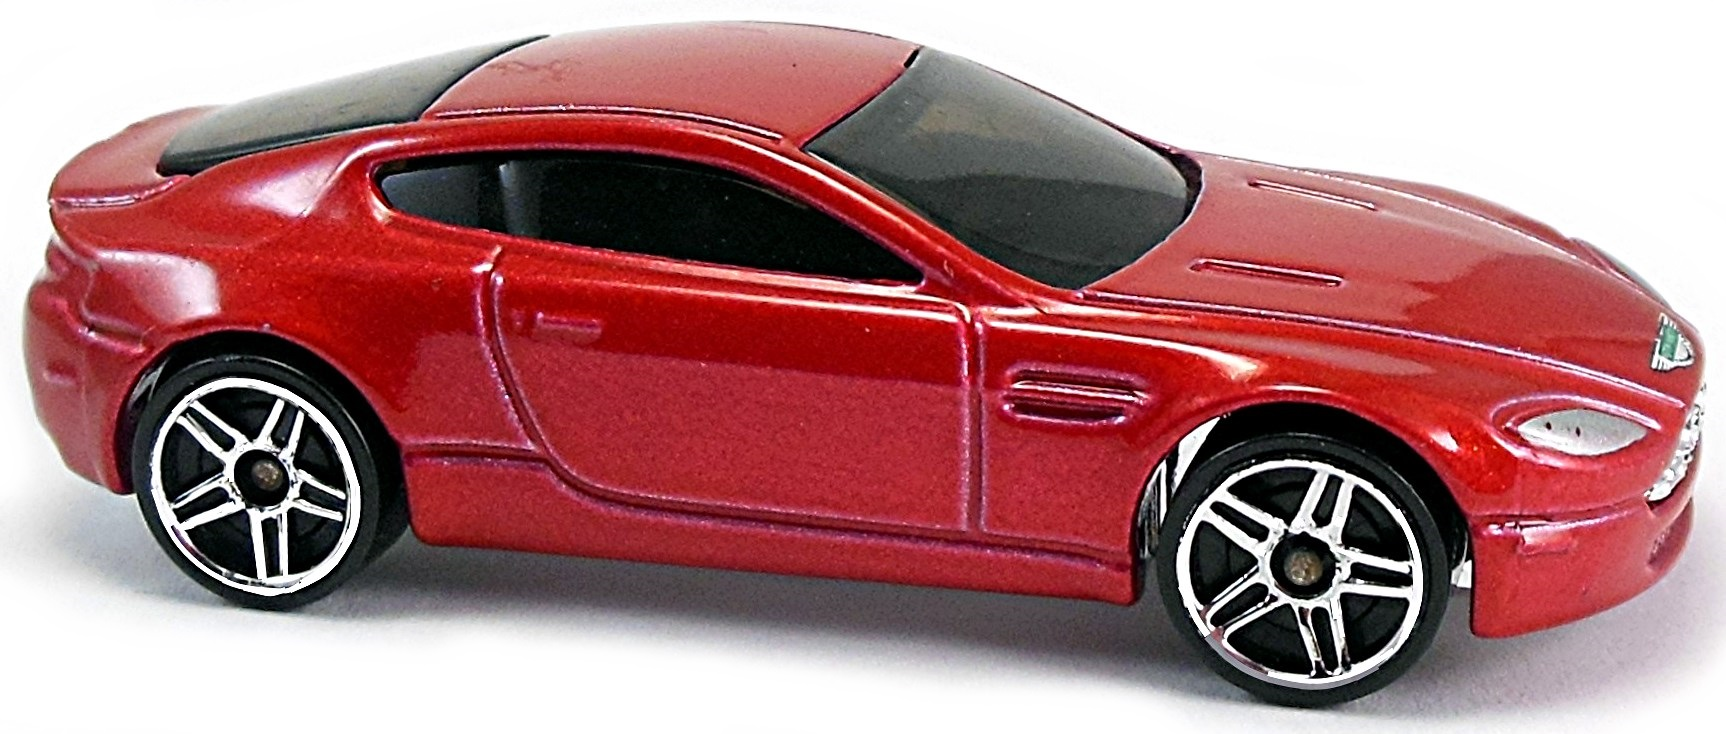 Aston Martin V8 Vantage - 70mm - 2005 | Hot Wheels Newsletter on black aston martin logo, aston martin gucci logo, aston martin car logo, aston martin dbs logo,